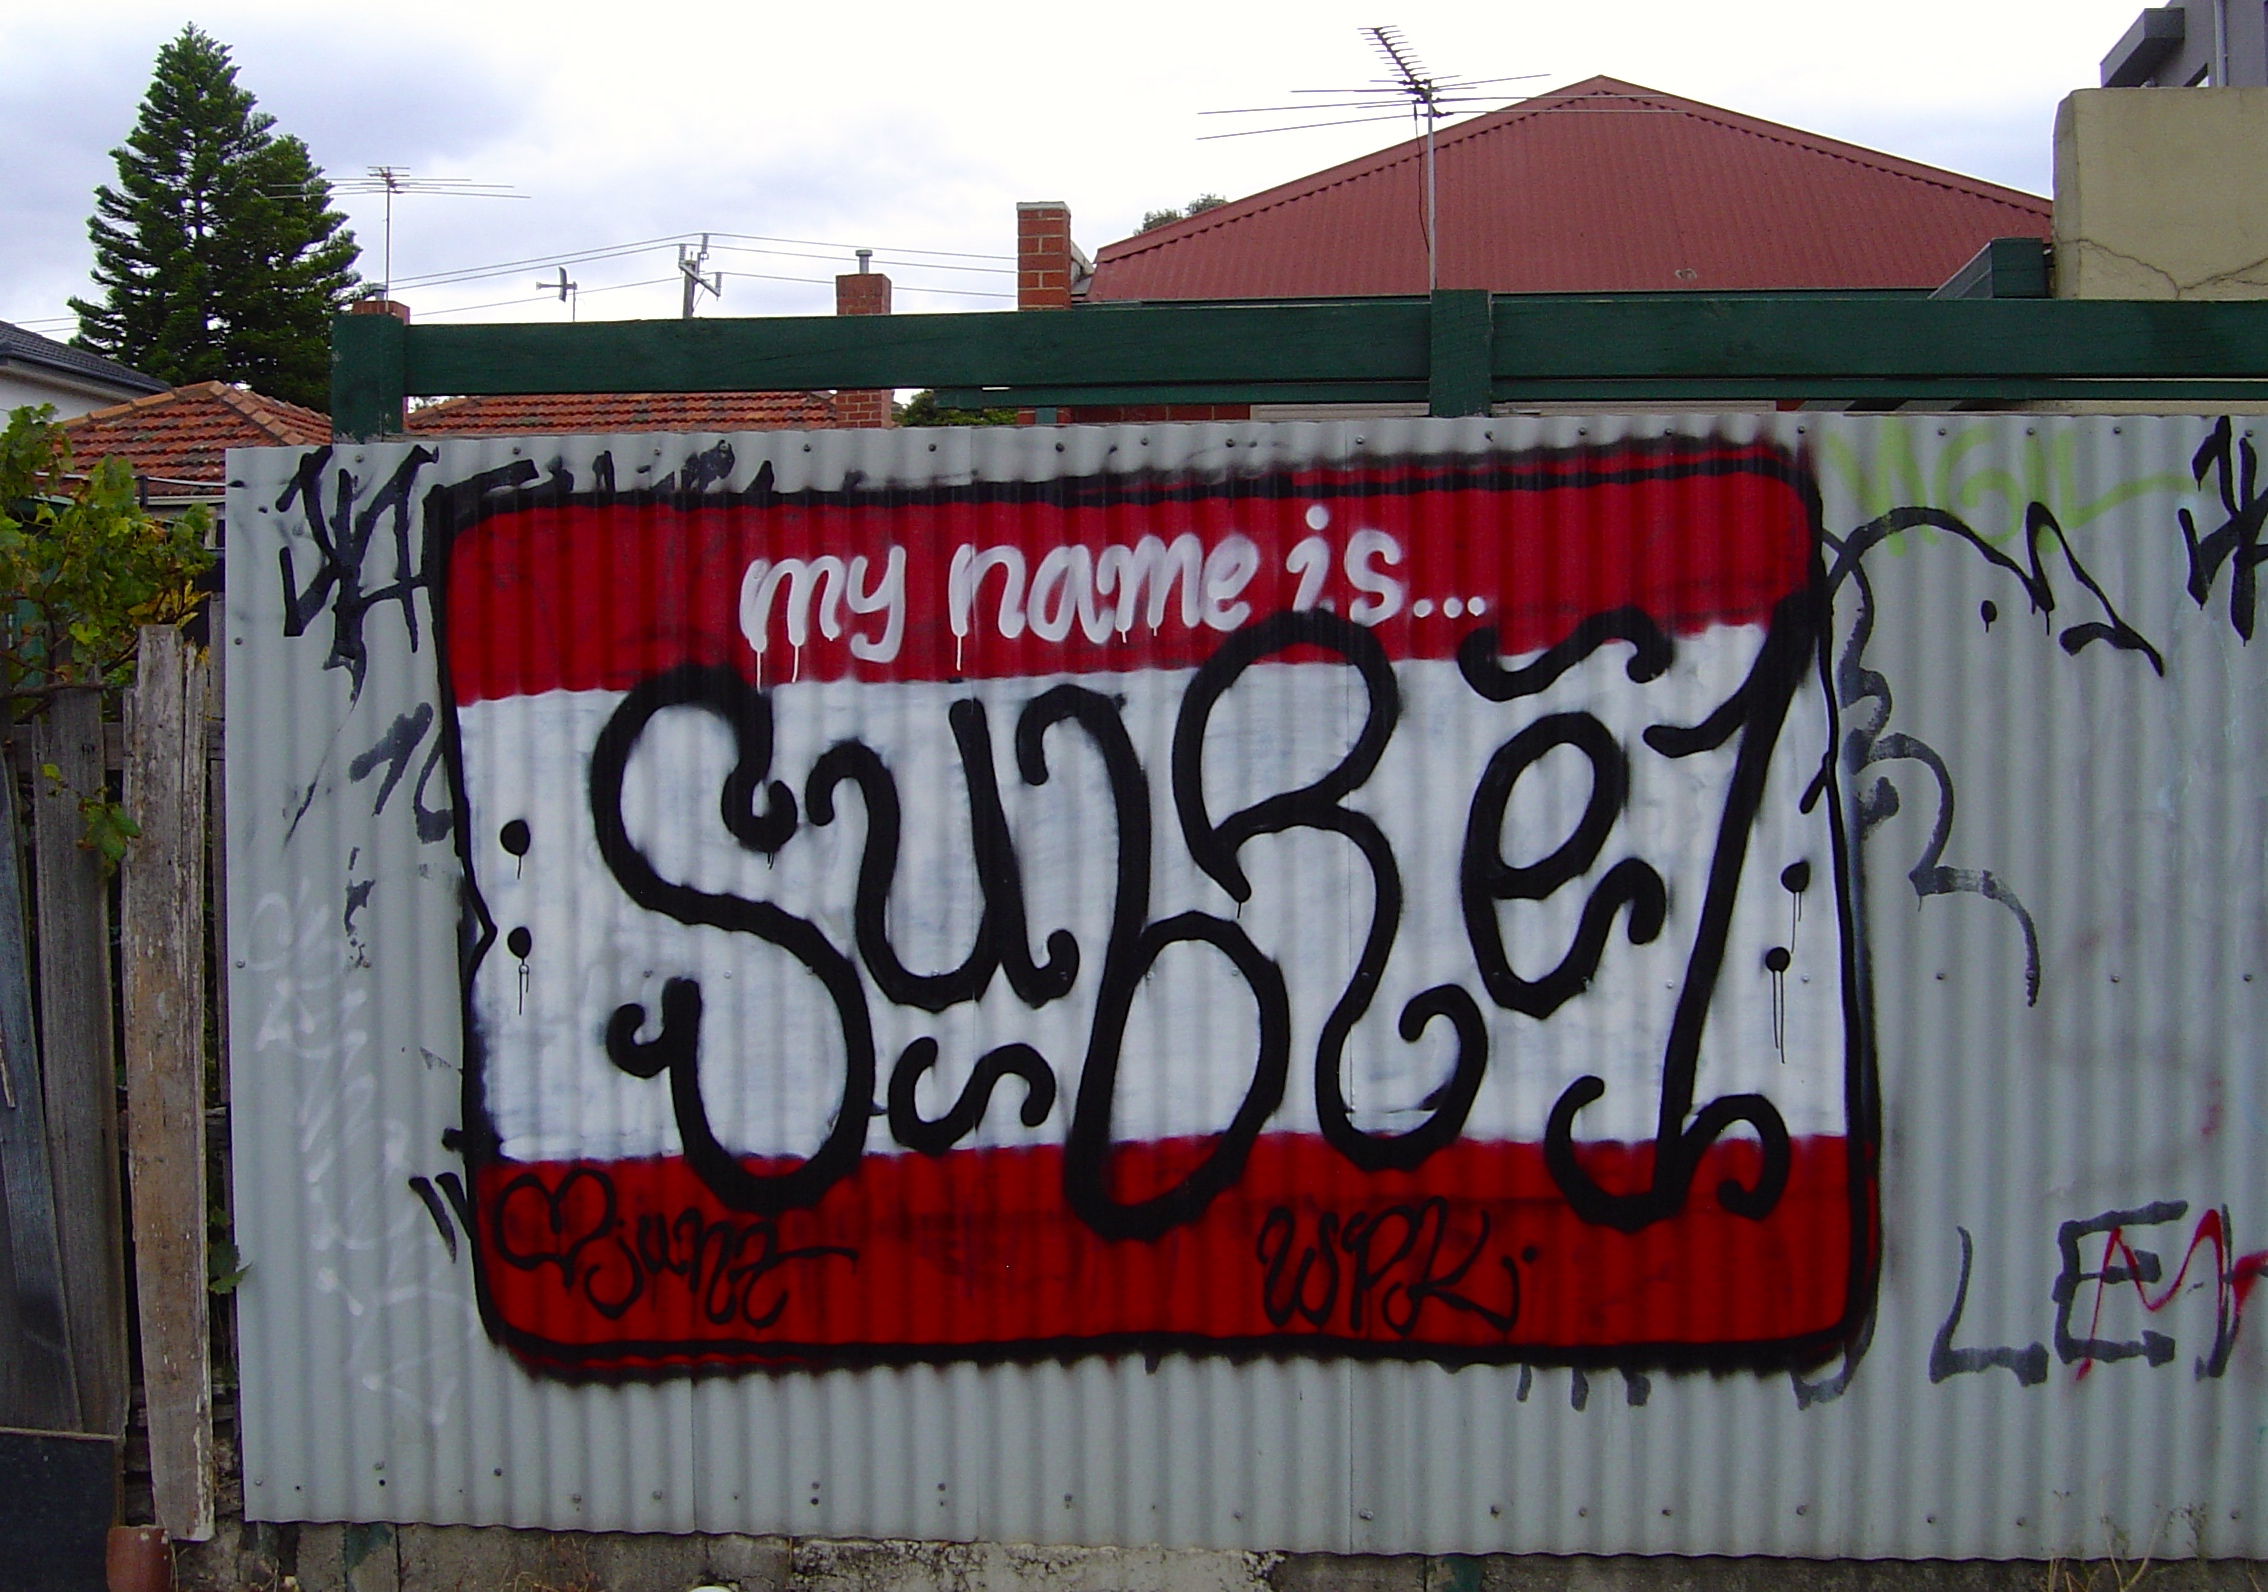 My name is subre1